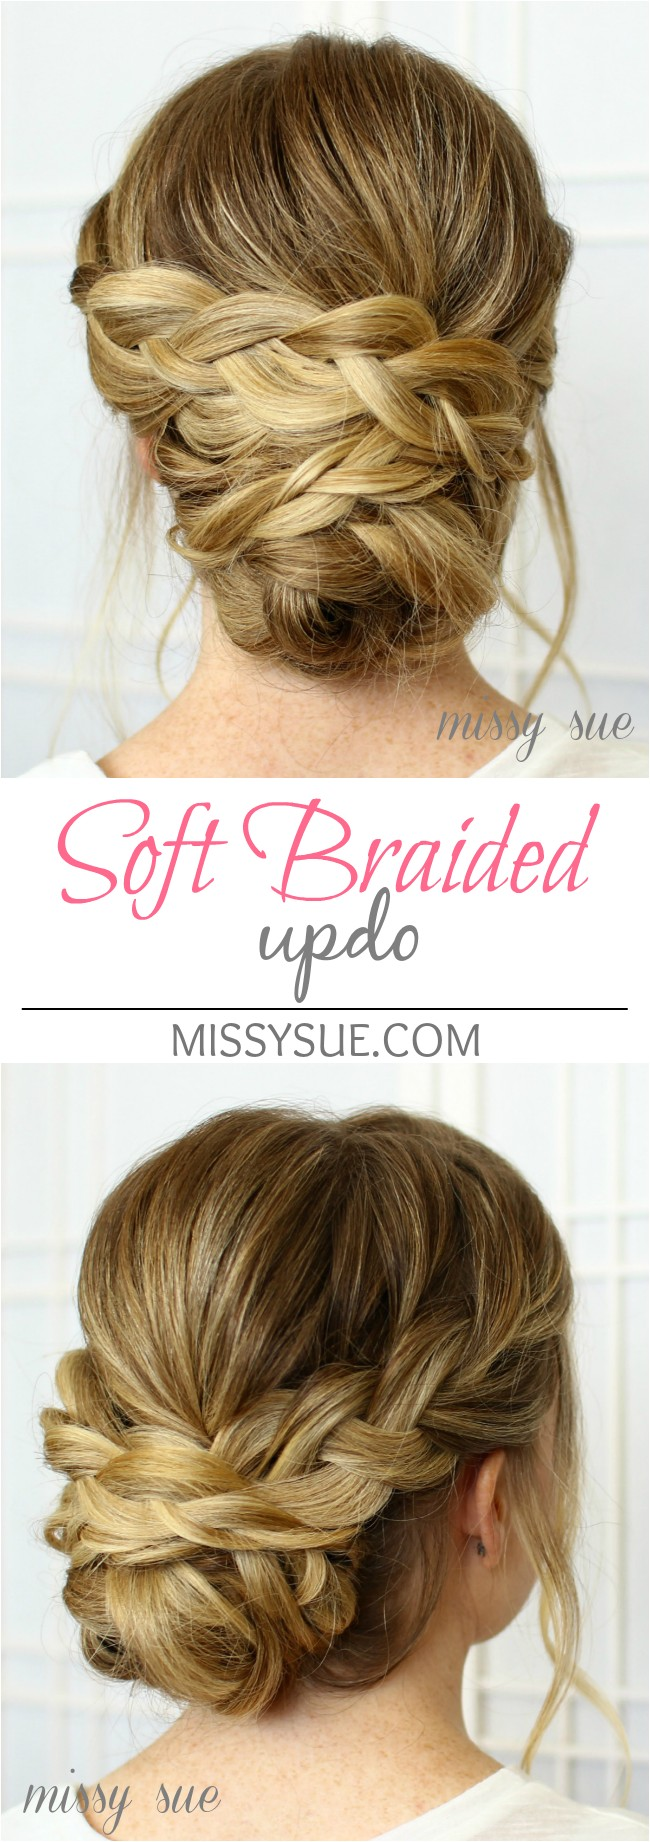 soft braided updo bridal hairstyle